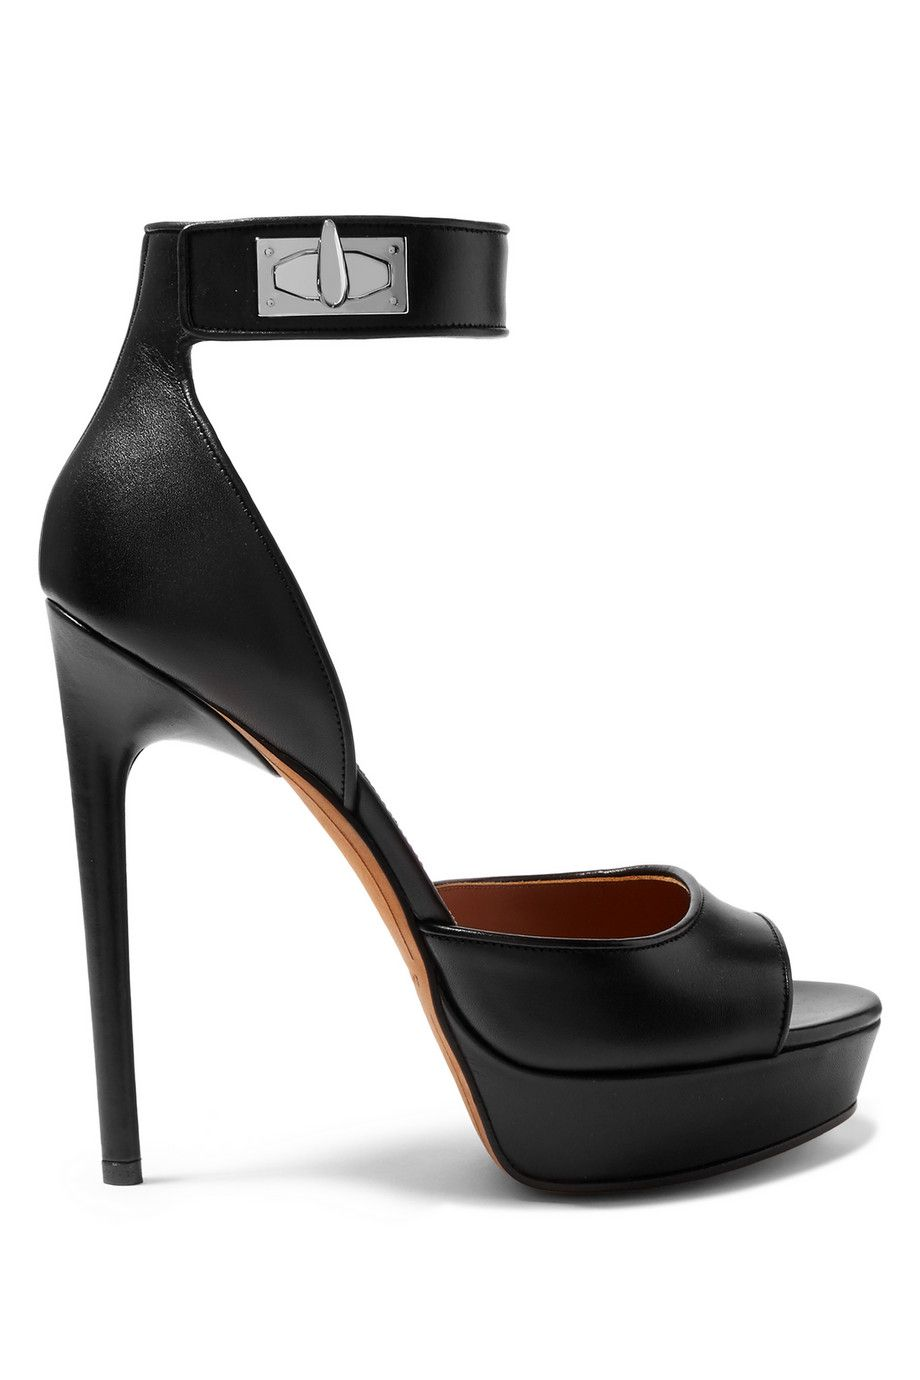 5f9154f5acf8 GIVENCHY Shark Lock platform sandals in black leather